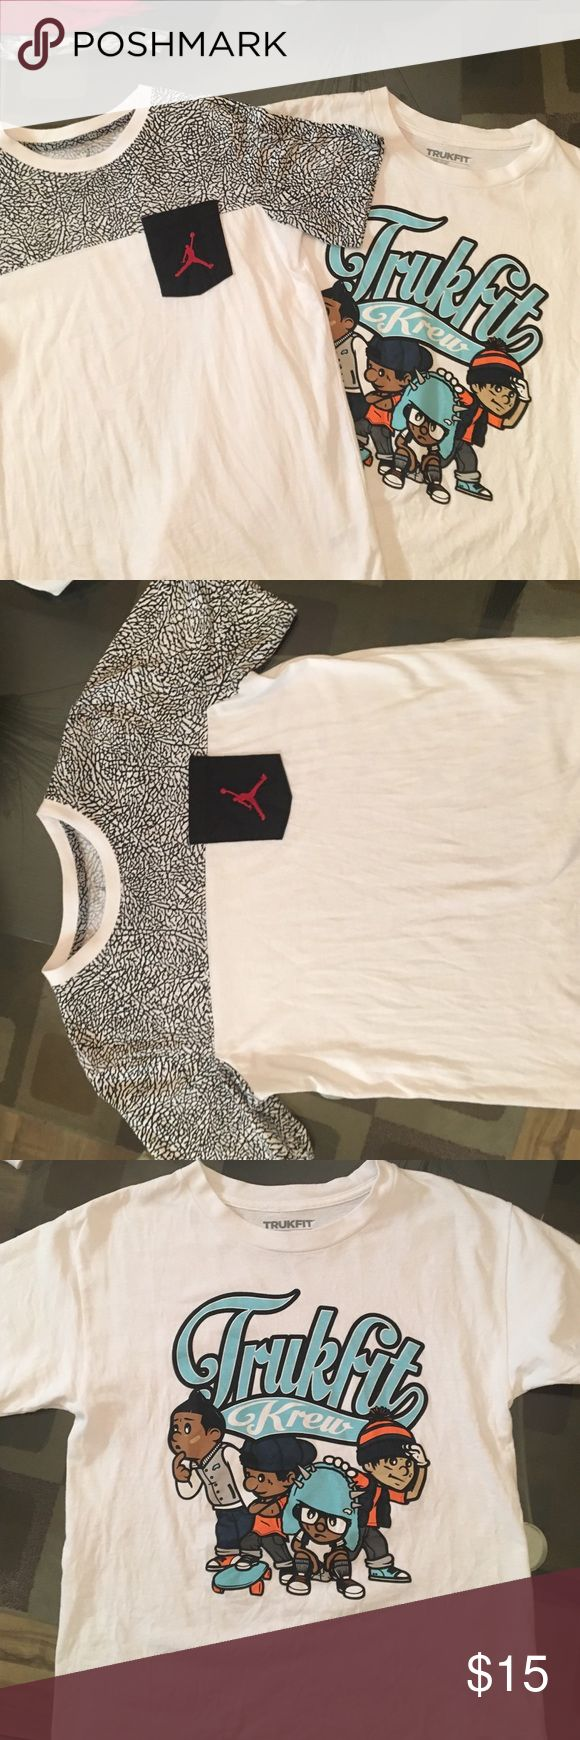 Jordan sold only trukfit available Trukfit and Jordan tees for kids. Buy together or seperate. Trukfit is a M and Jordan is a L but both are same size, just different sizing. Jordan Shirts & Tops Tees - Short Sleeve